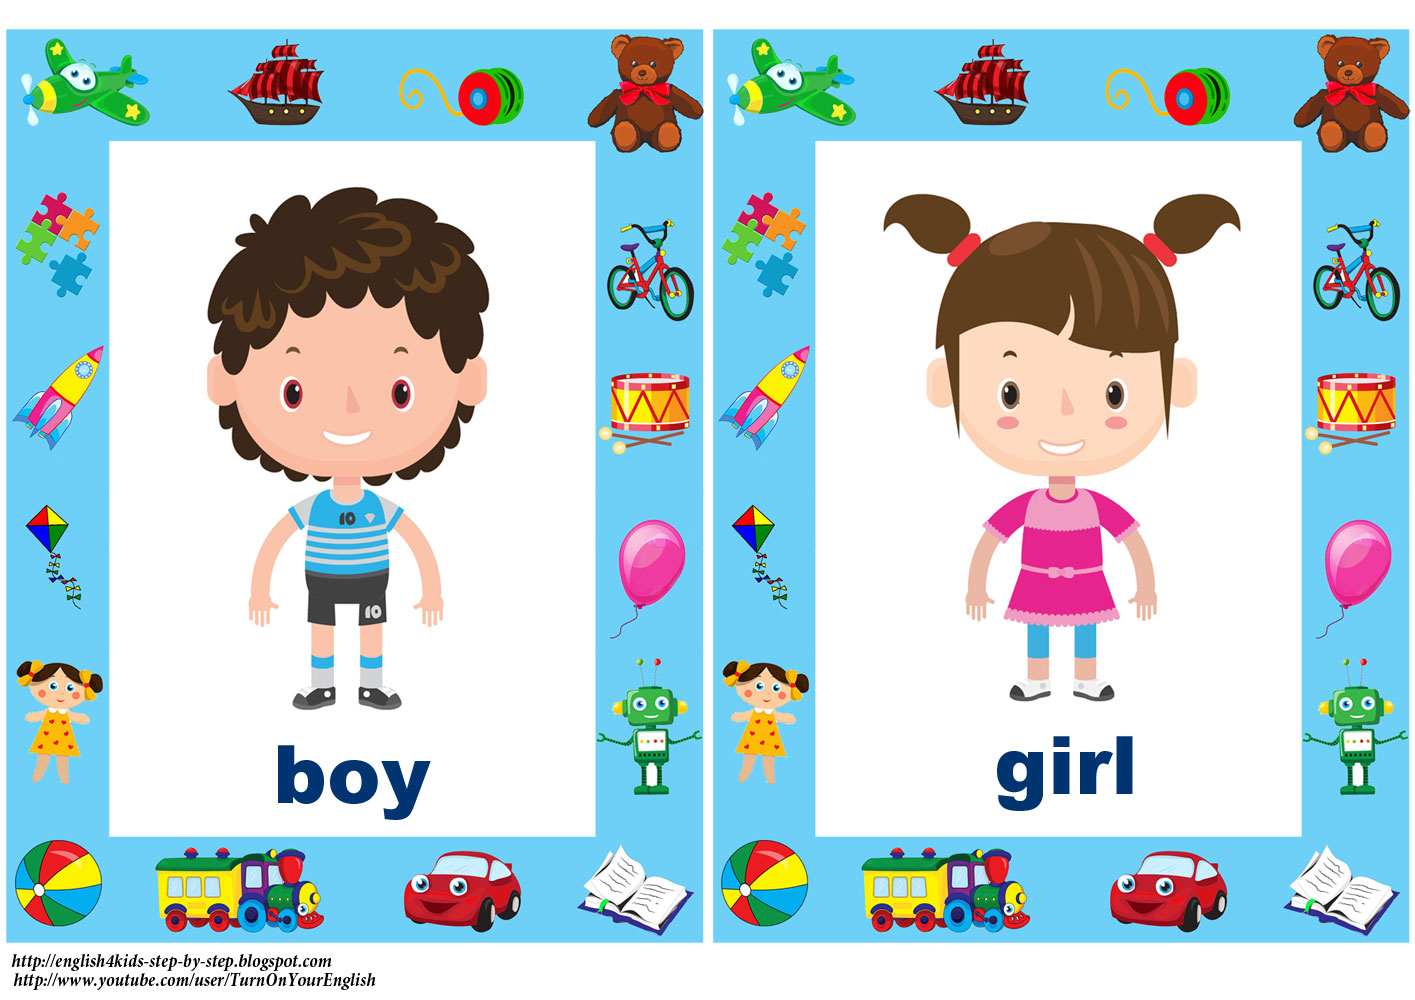 English For Kids Step By Step Toys Song For Children